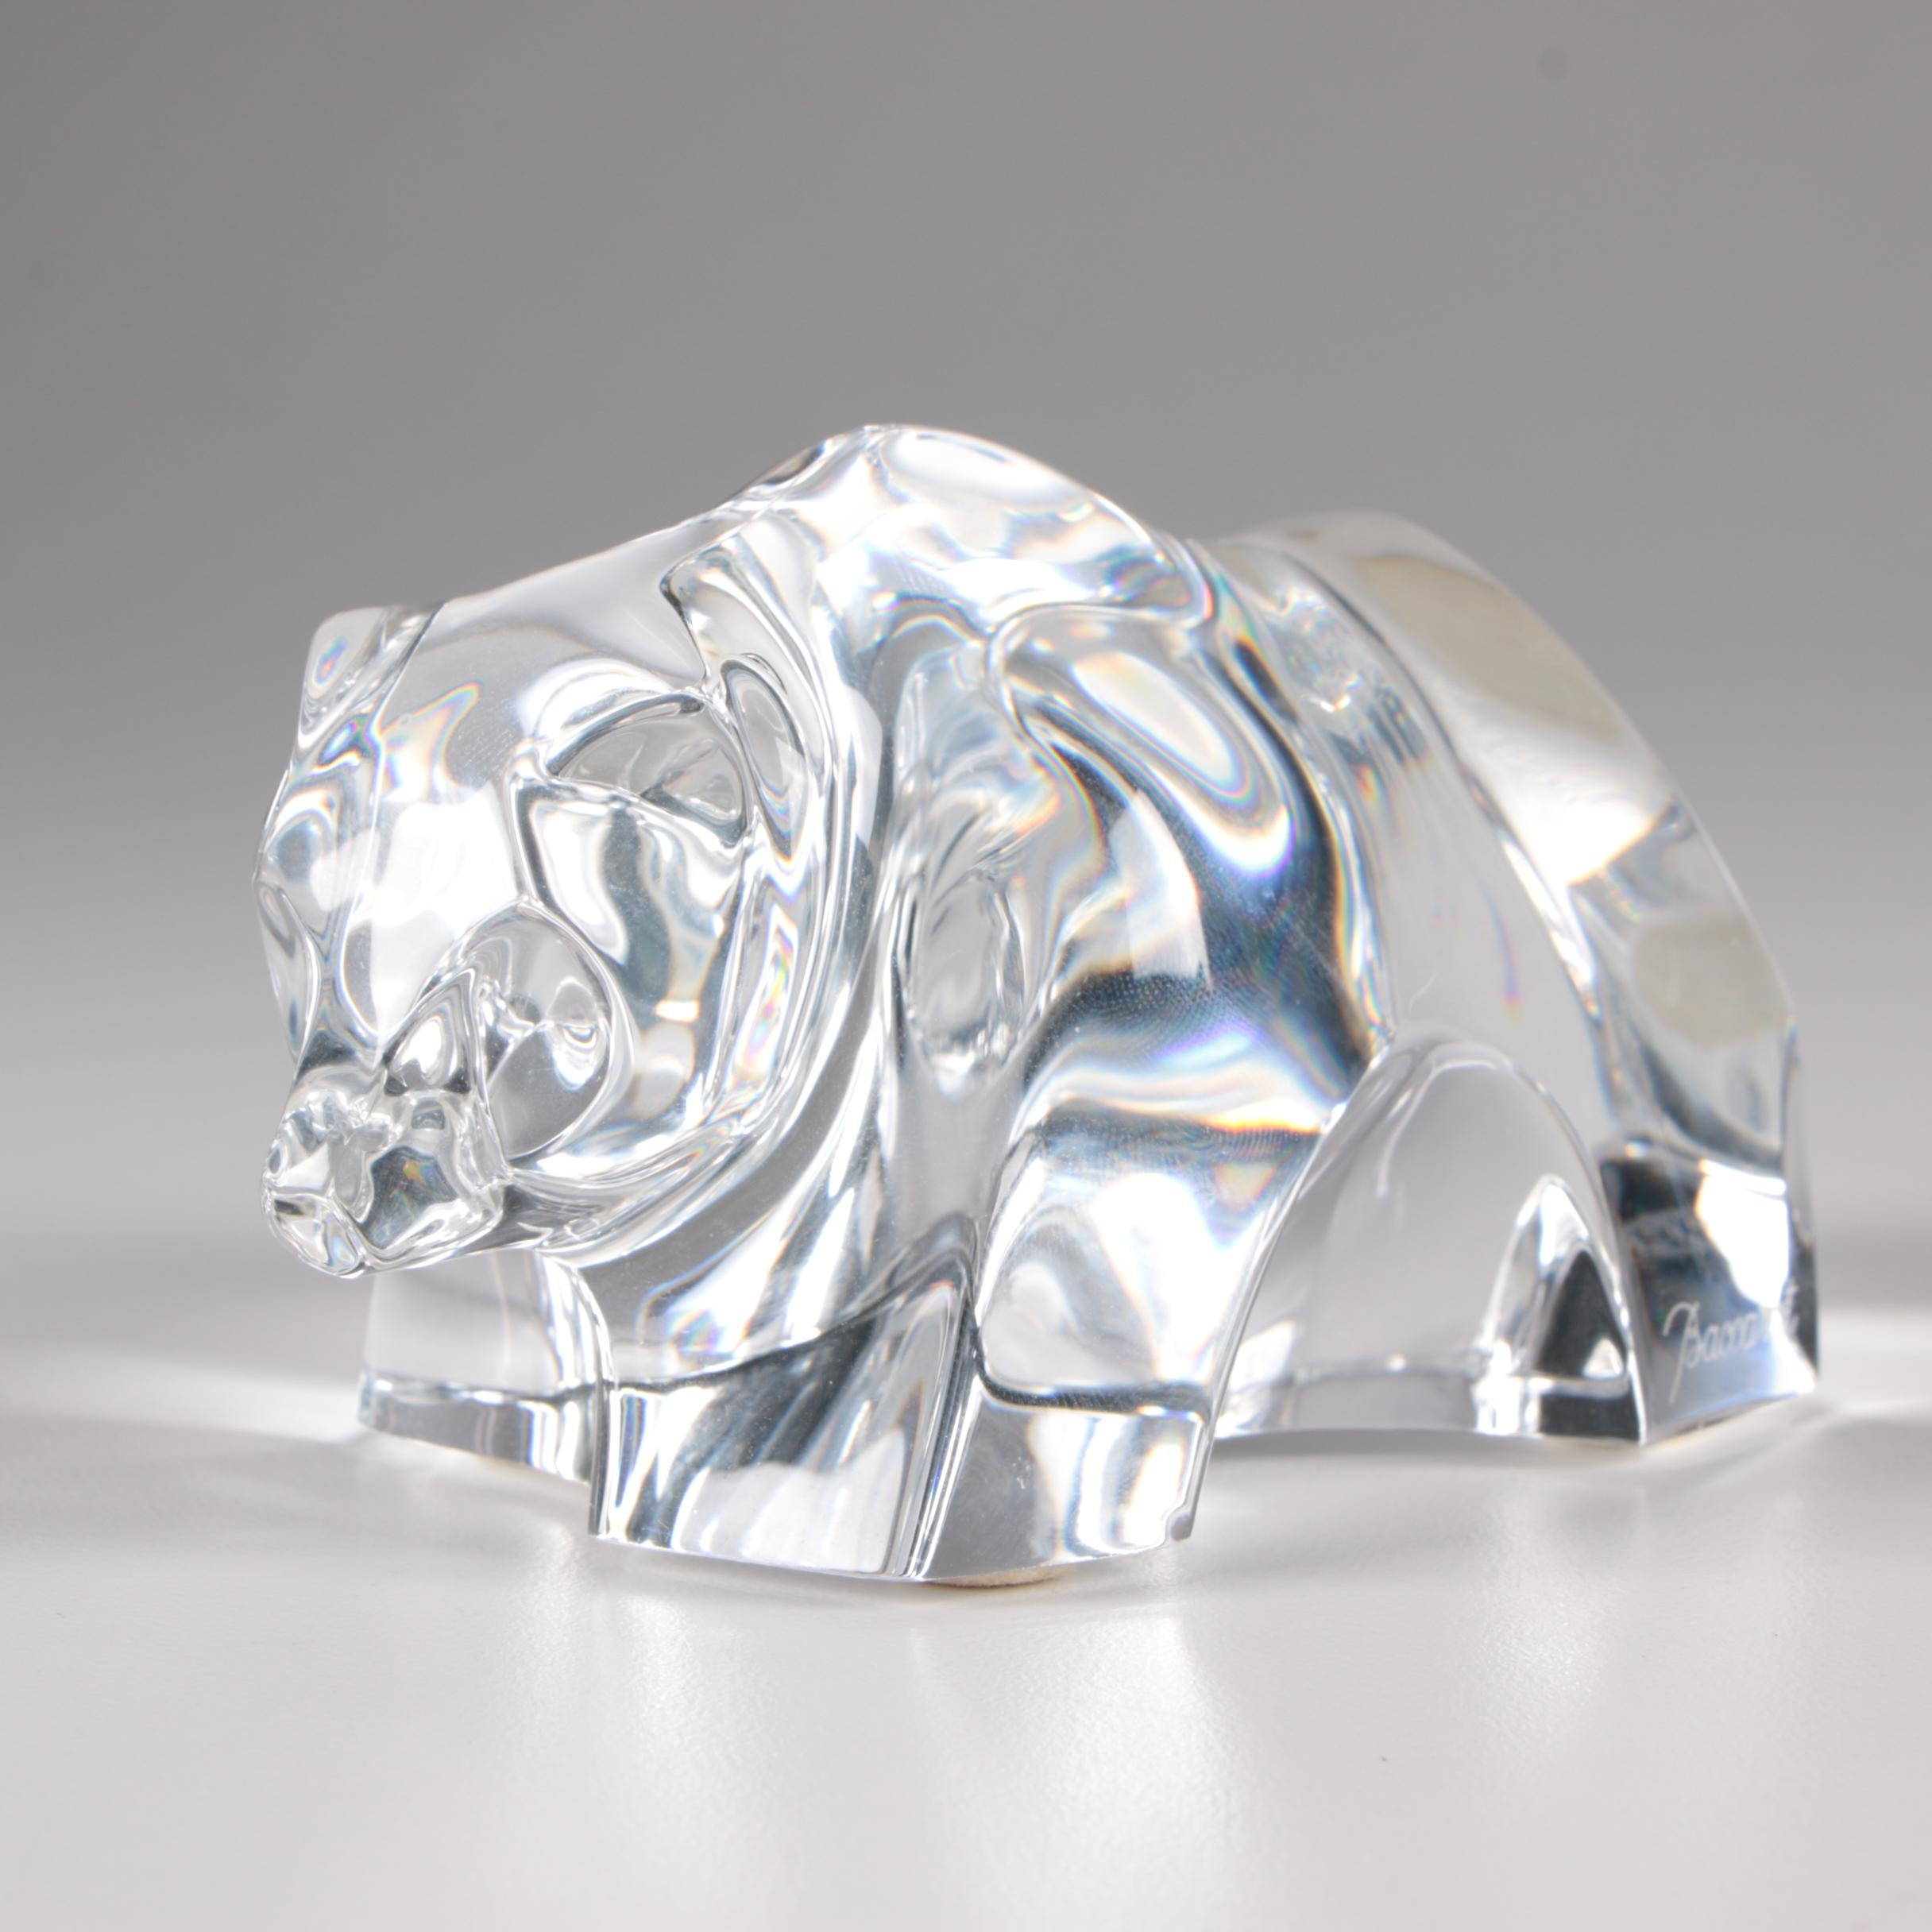 Baccarat Art Glass Grizzly Bear Figurine